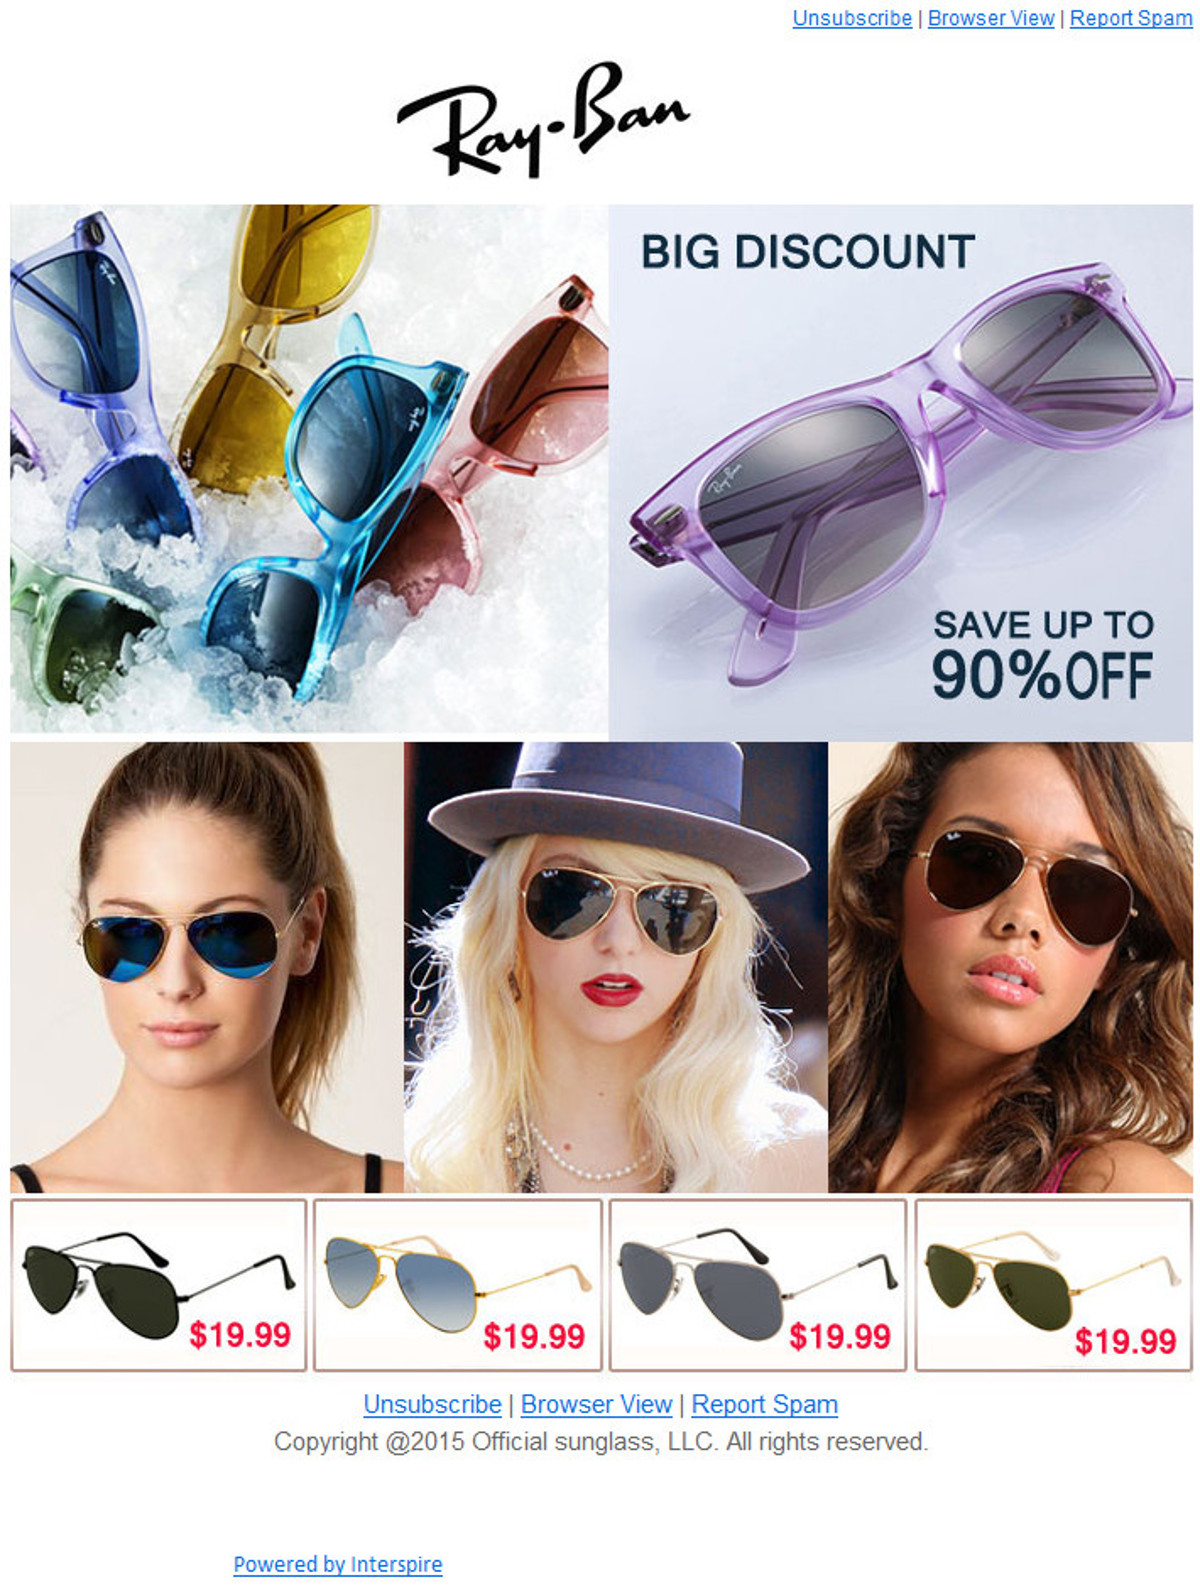 ray ban discount sunglasses  Fake Ray-Ban Sunglasses Online Email - MailShark